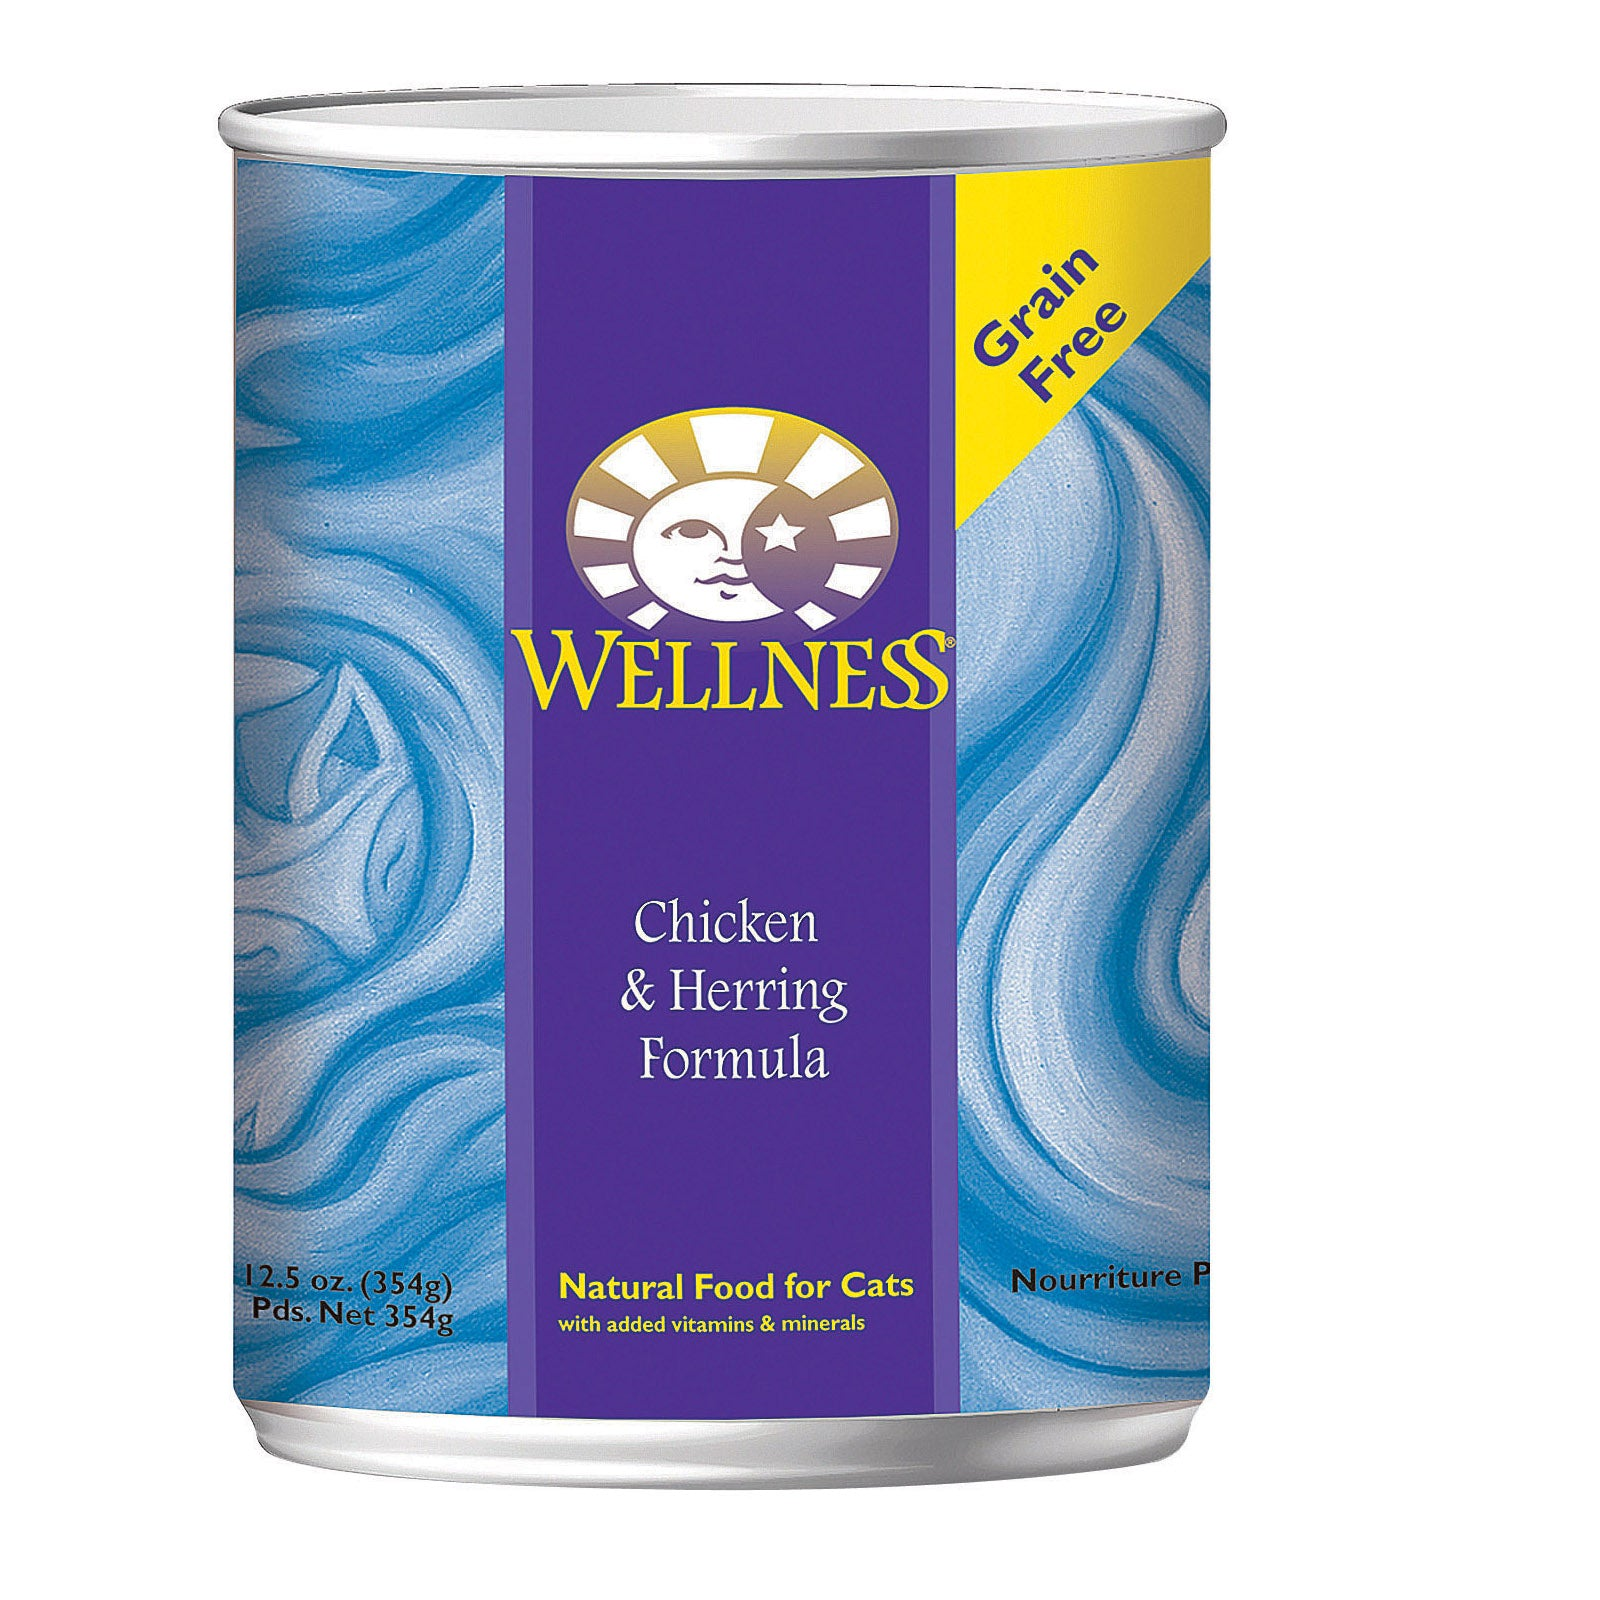 Wellness Chicken And Herring - Case Of 12 - 12.5 Oz.